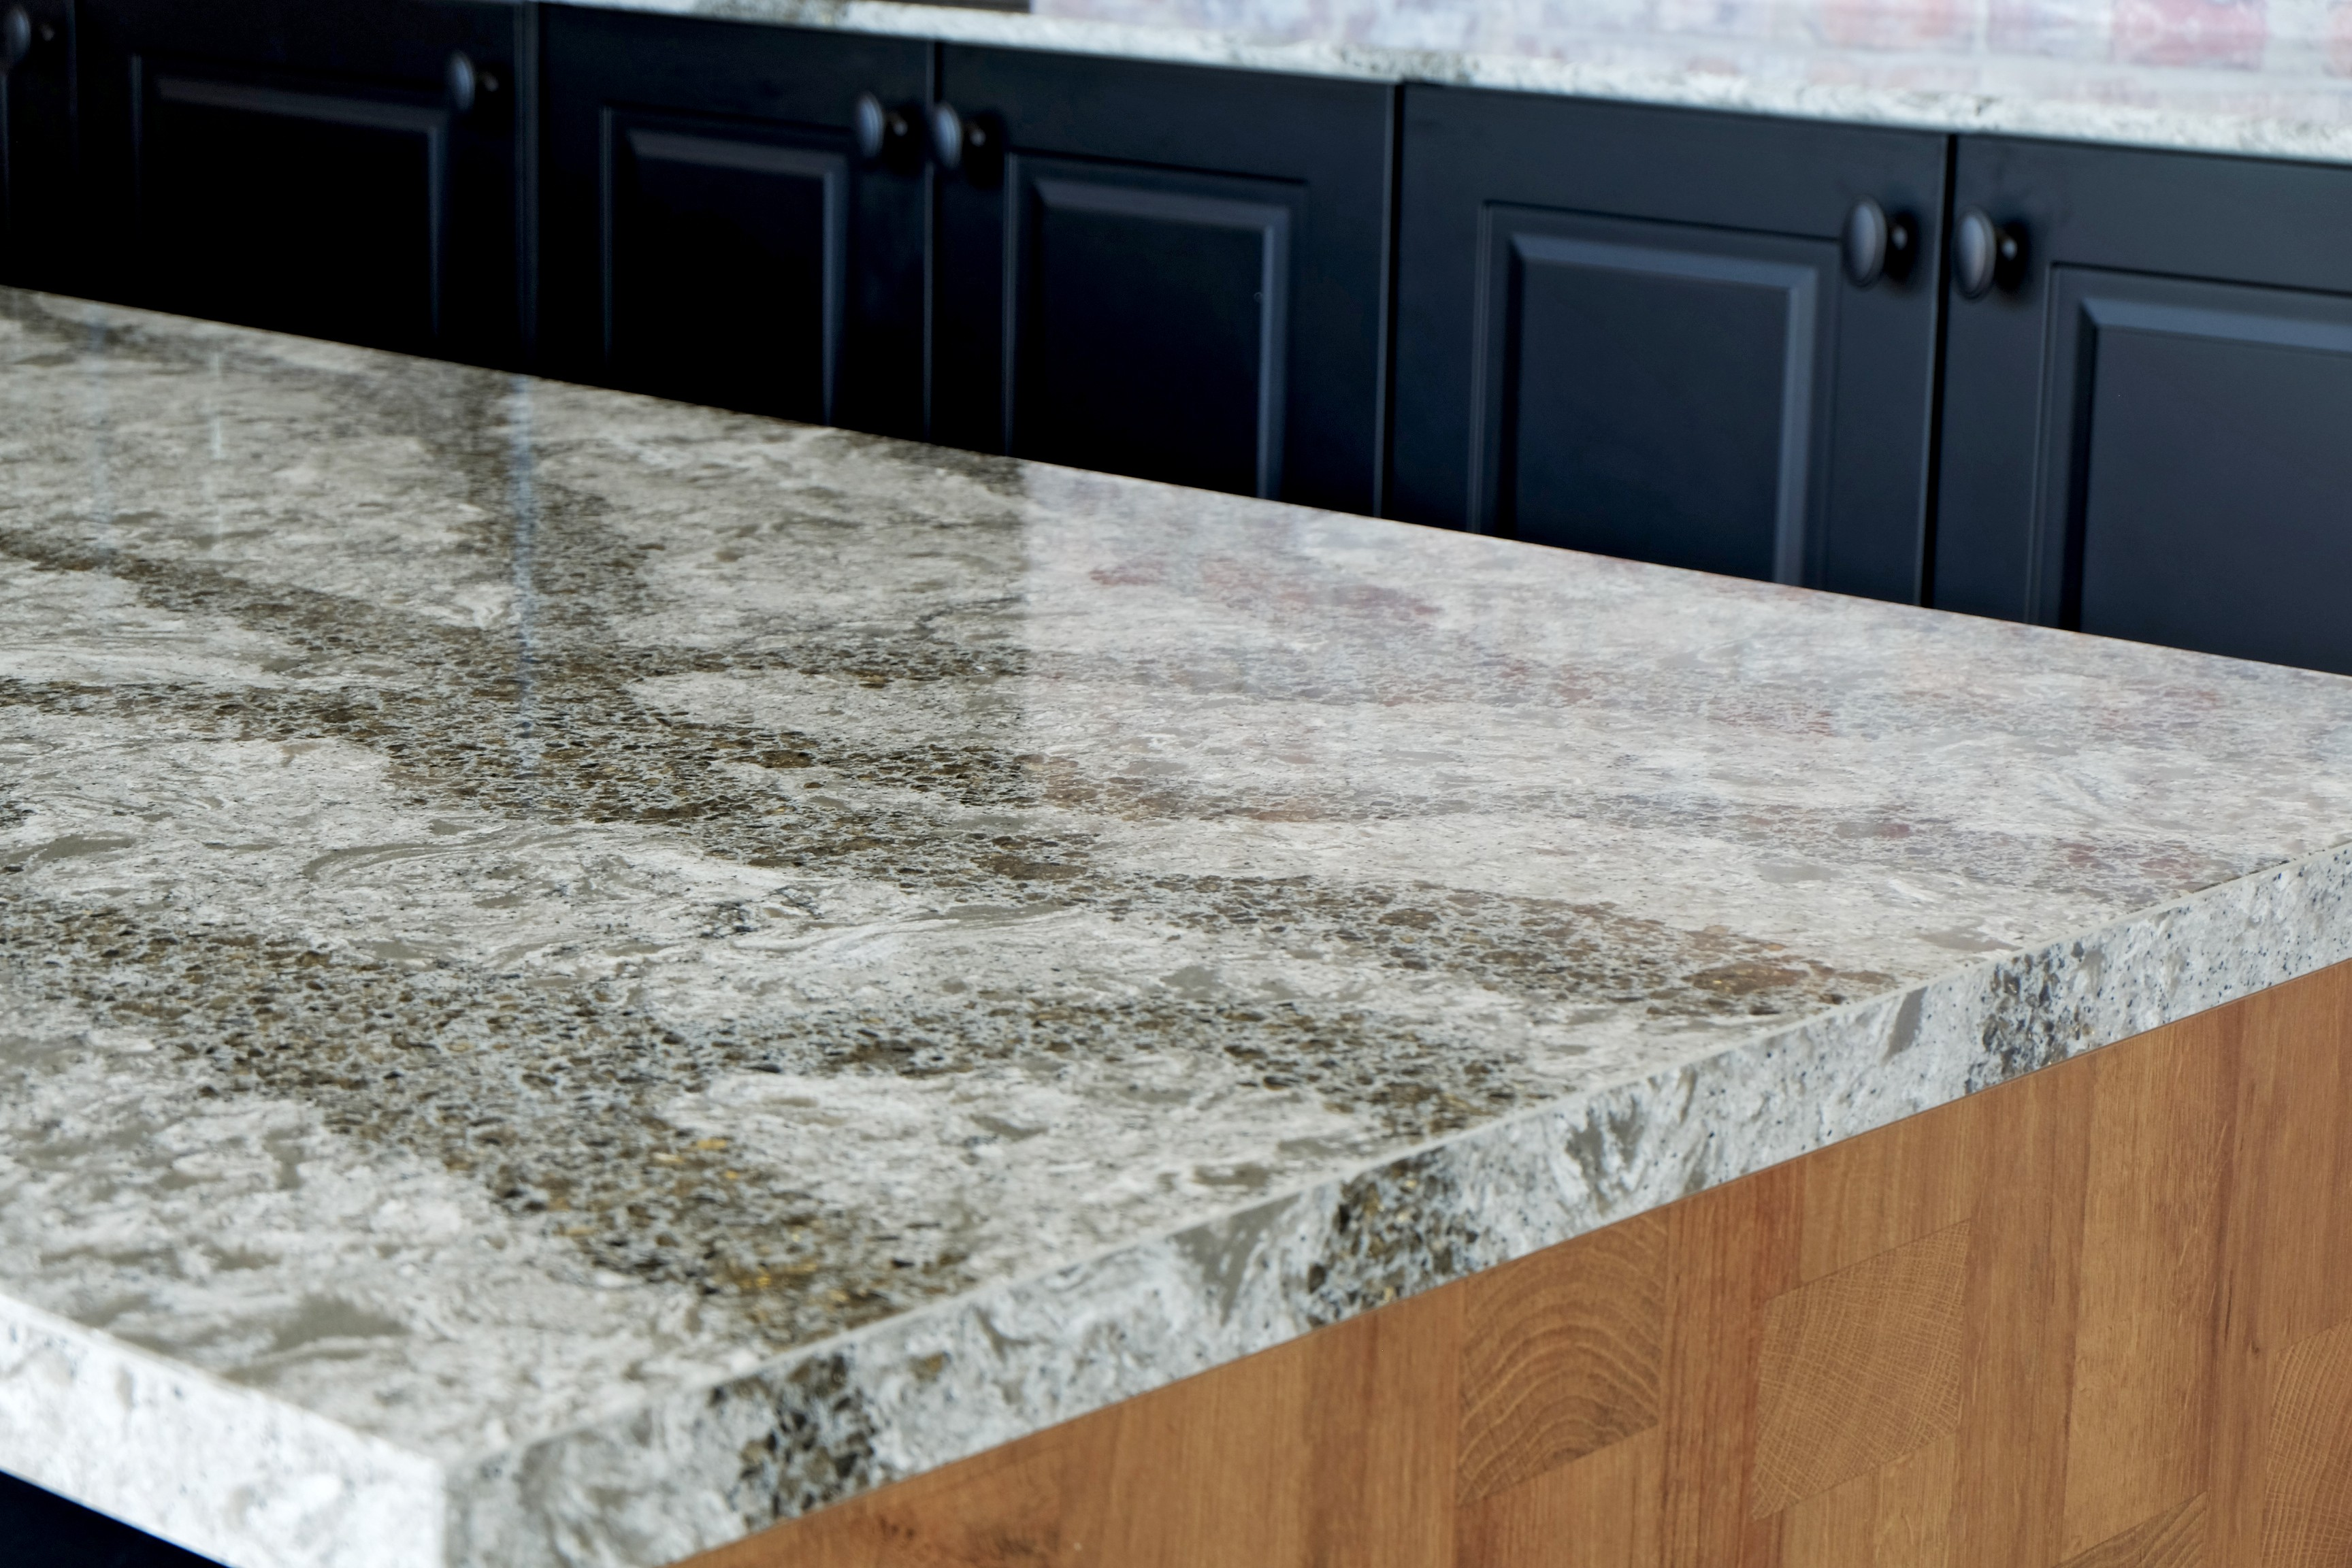 While There Are A Lot Of Quality Countertop Material Choices Out Especially As It Relates To Natural Stone Engineered Such Quartz Provides